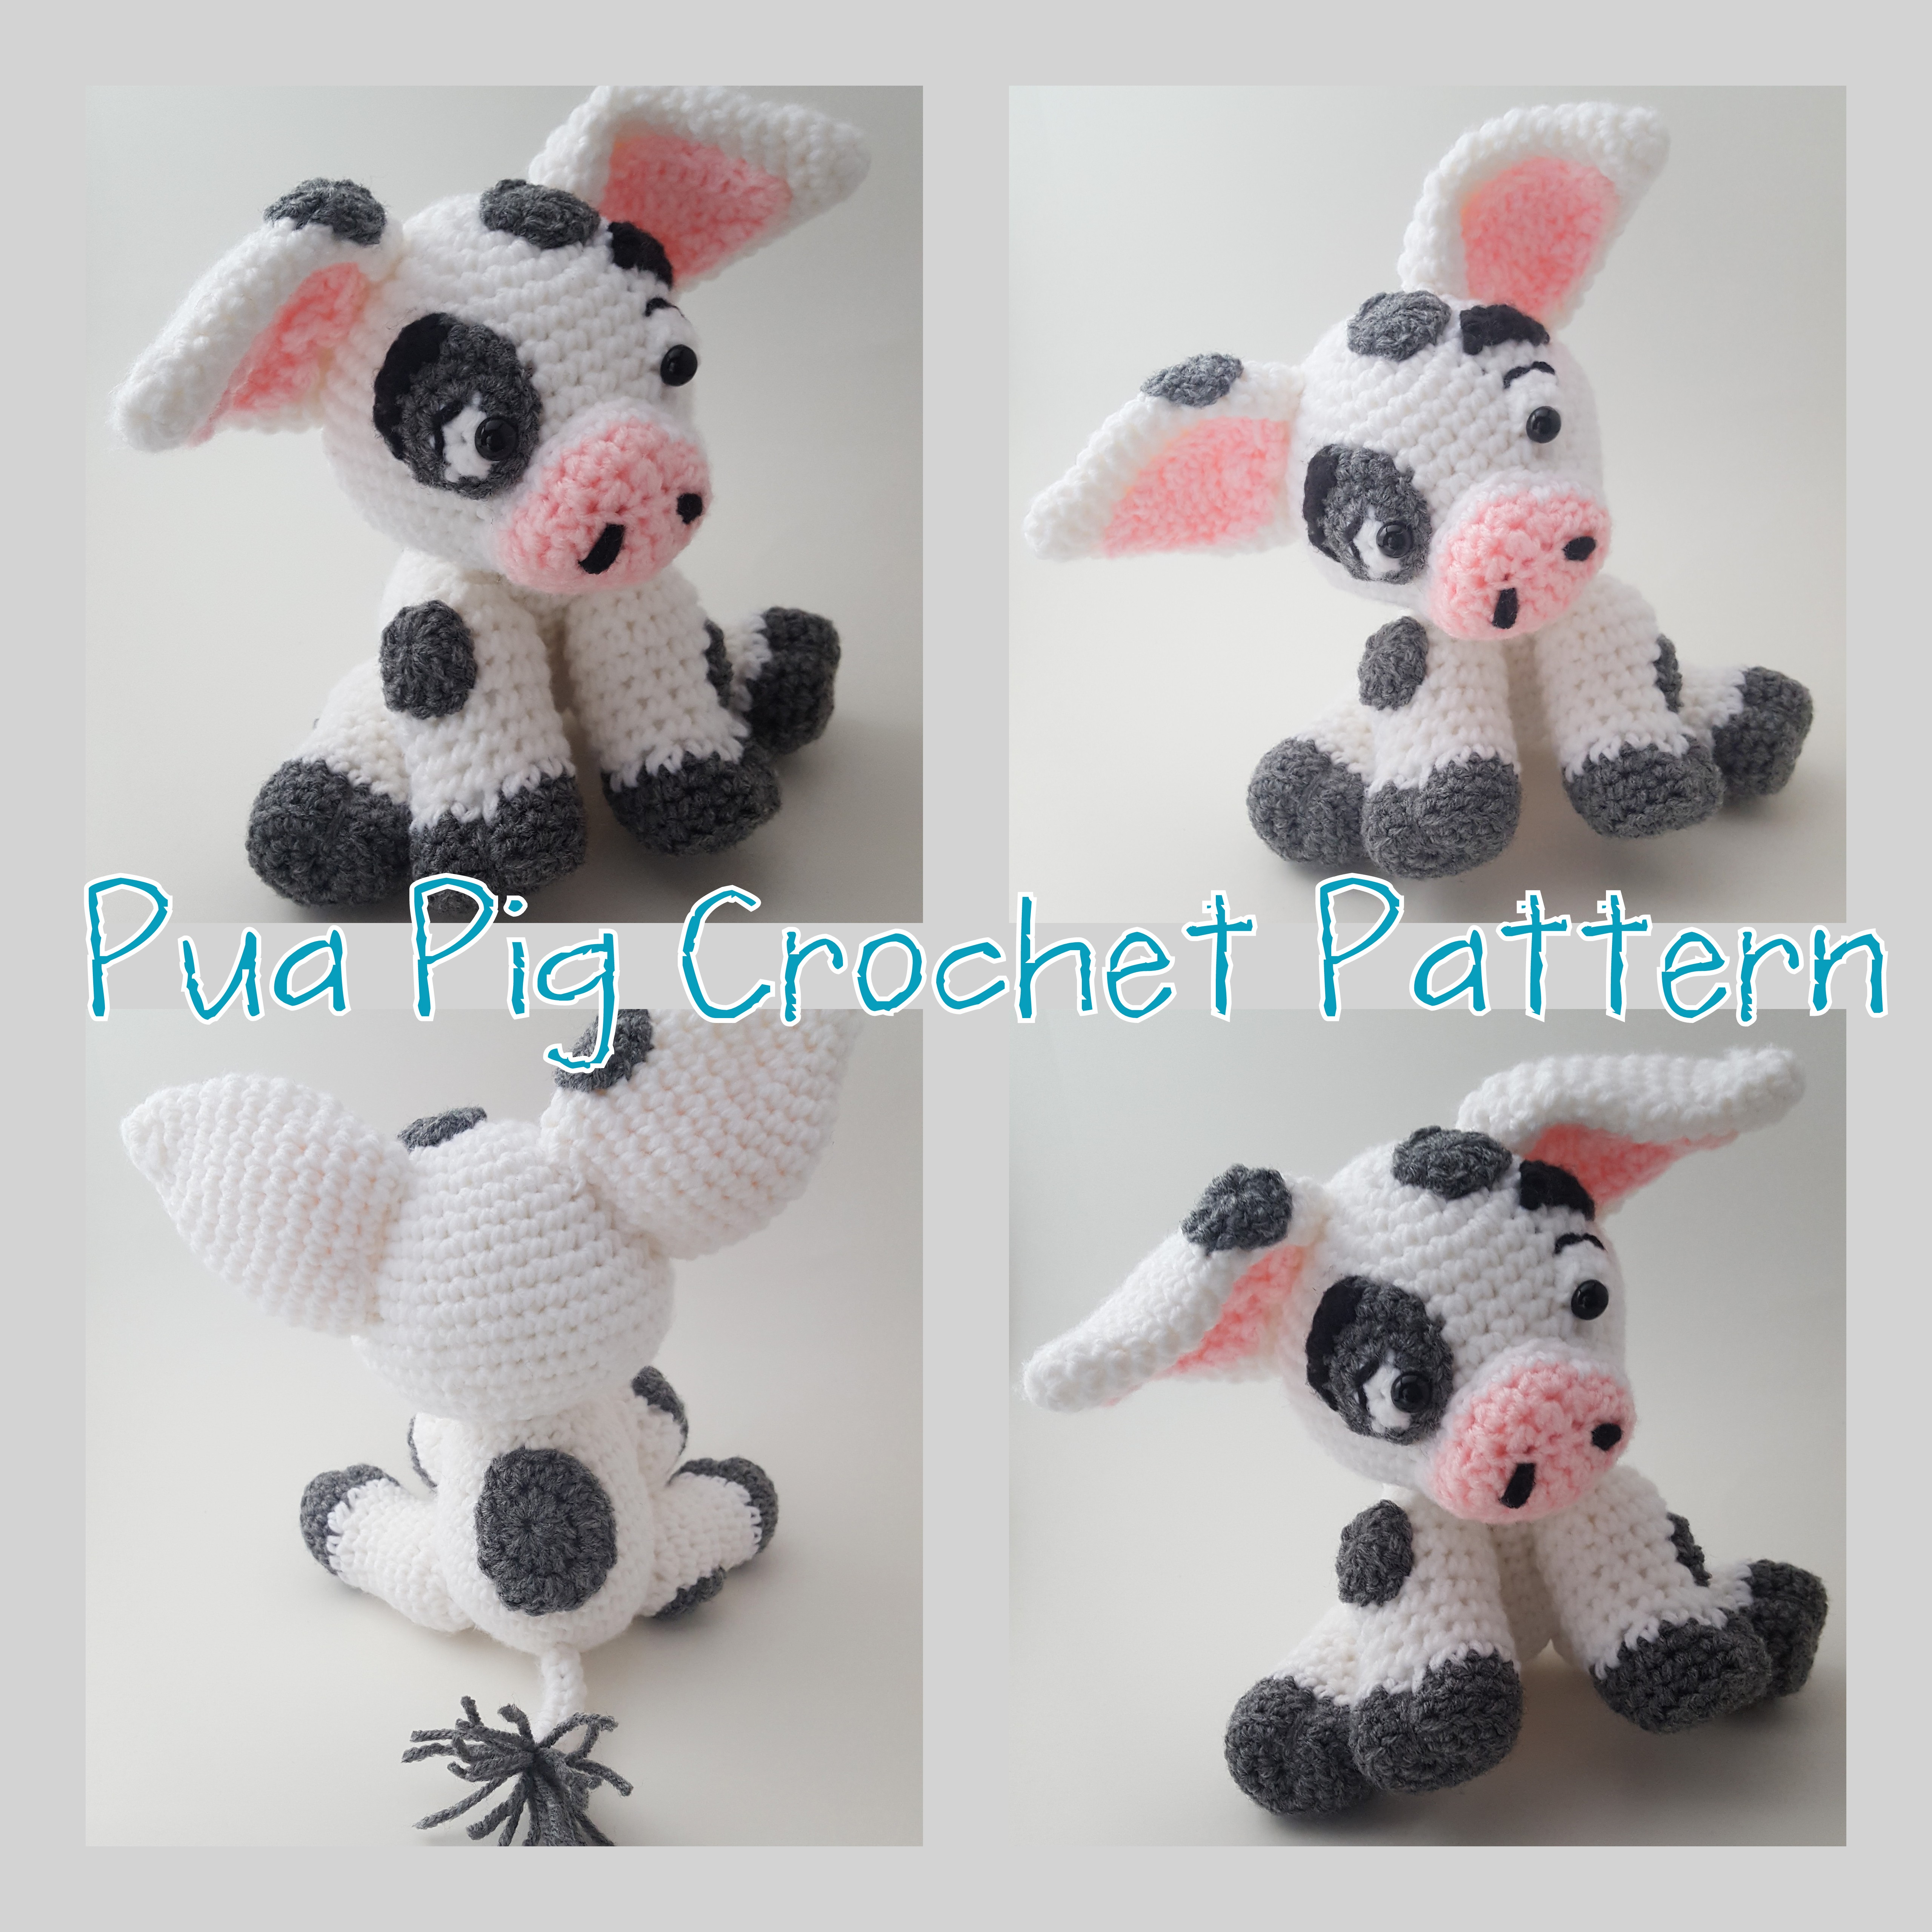 Pua Pig Crochet Pattern – Jasmine Art Works